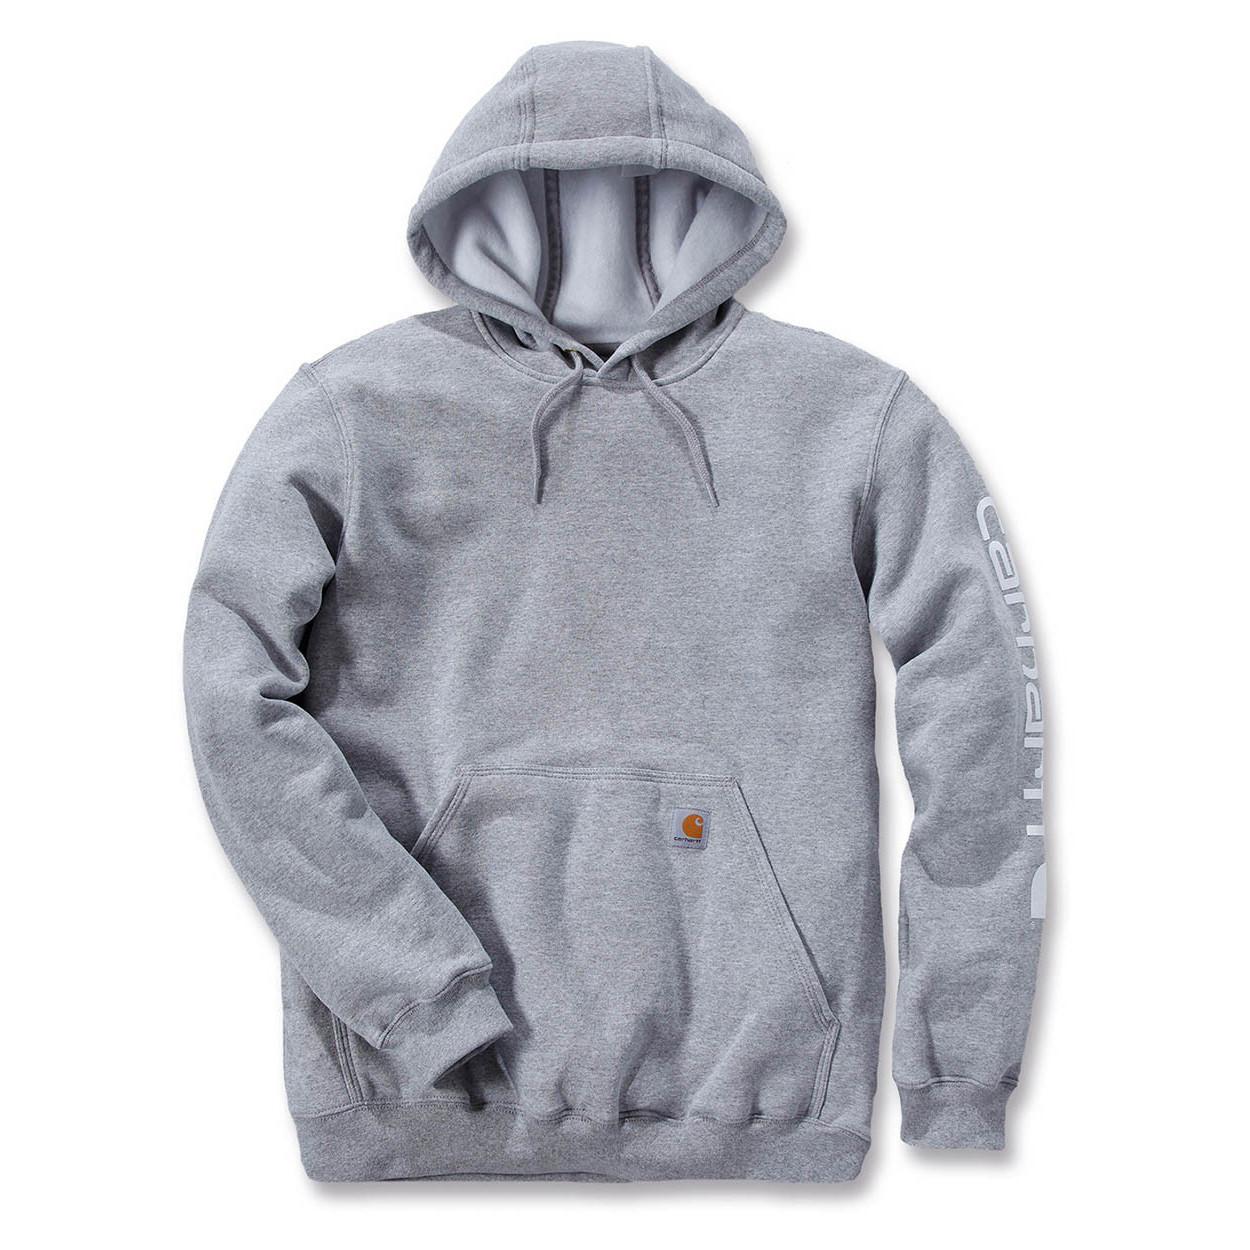 Худи Carhartt Sleeve Logo Hooded Sweatshirt - K288 (Heather Grey, M)